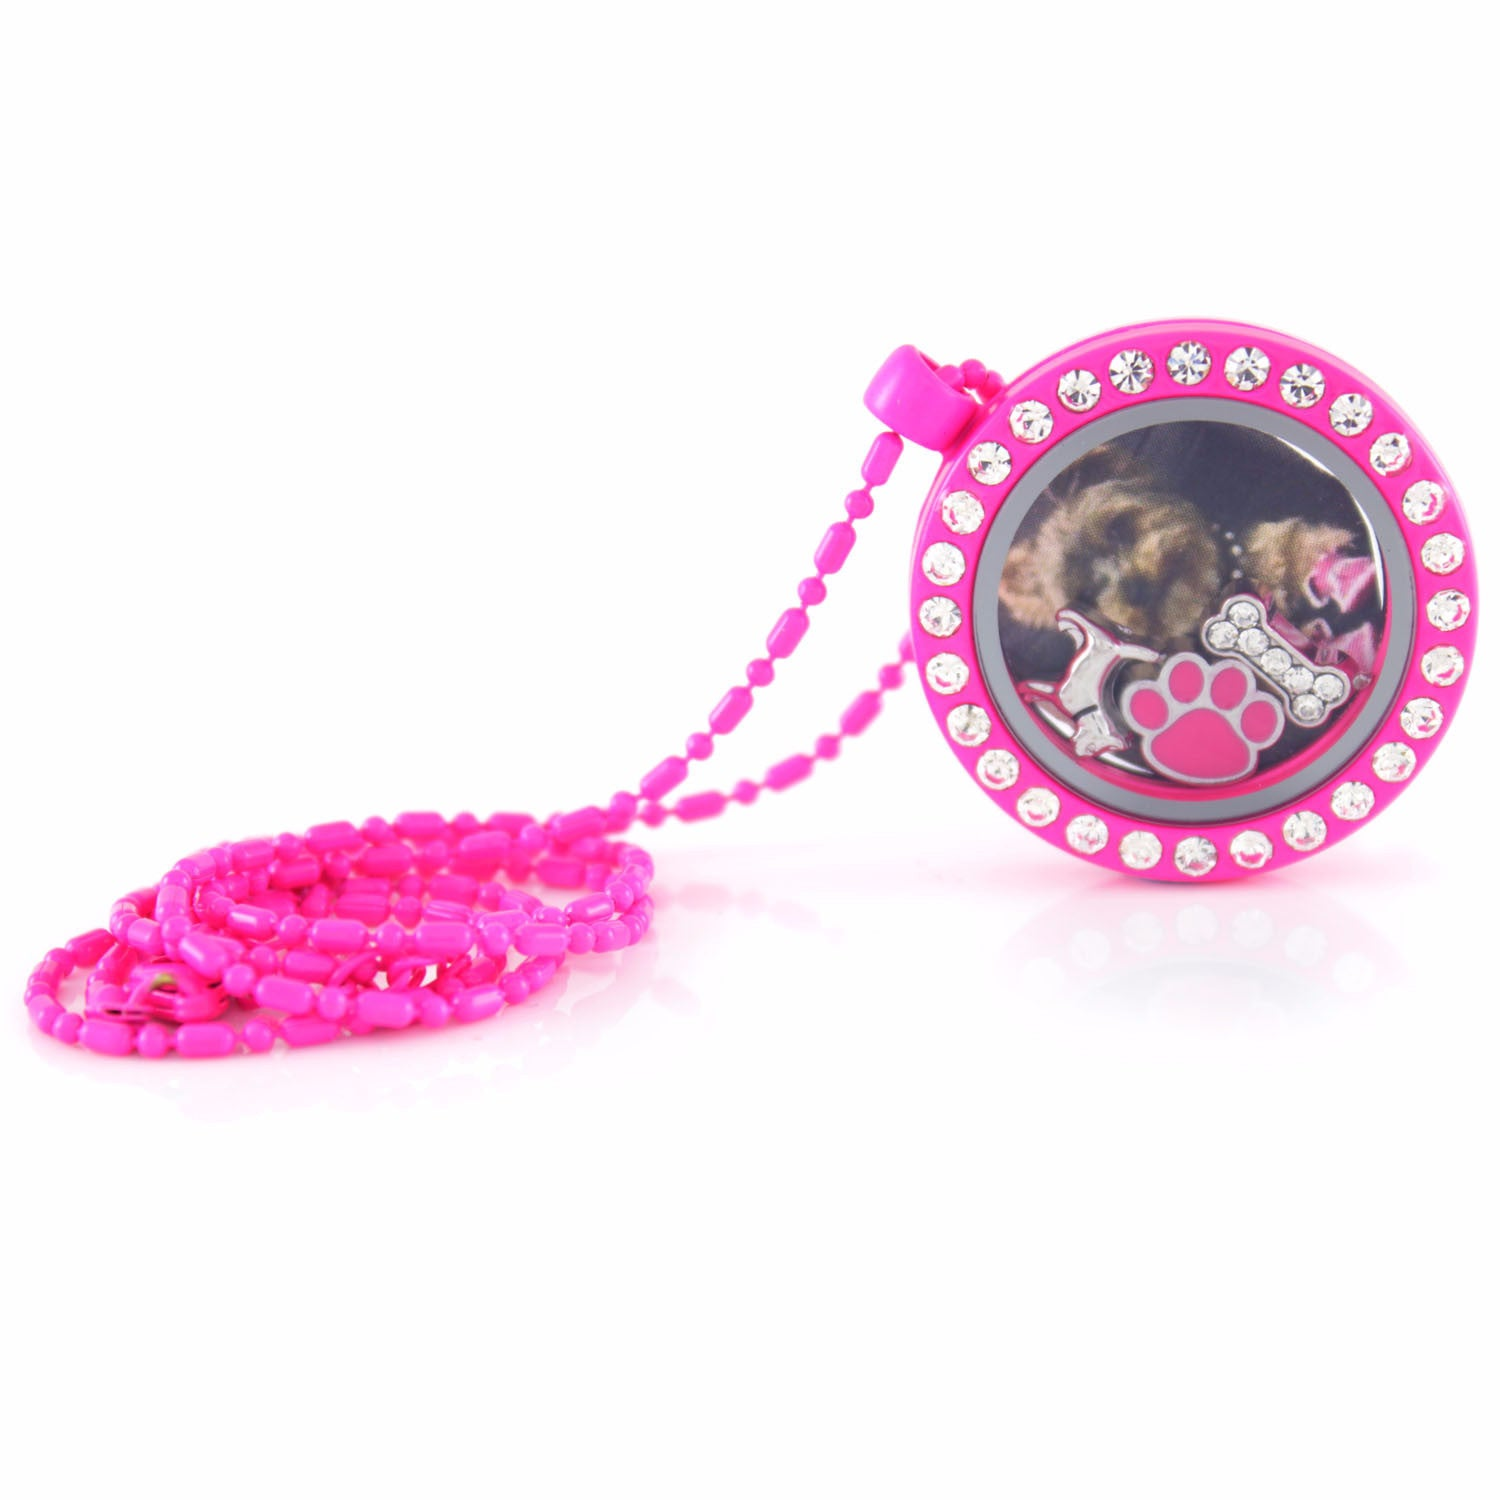 Floating Locket Necklace with Choice of 6 Charms and Matching Chain (Neon Hot Pink Circle)